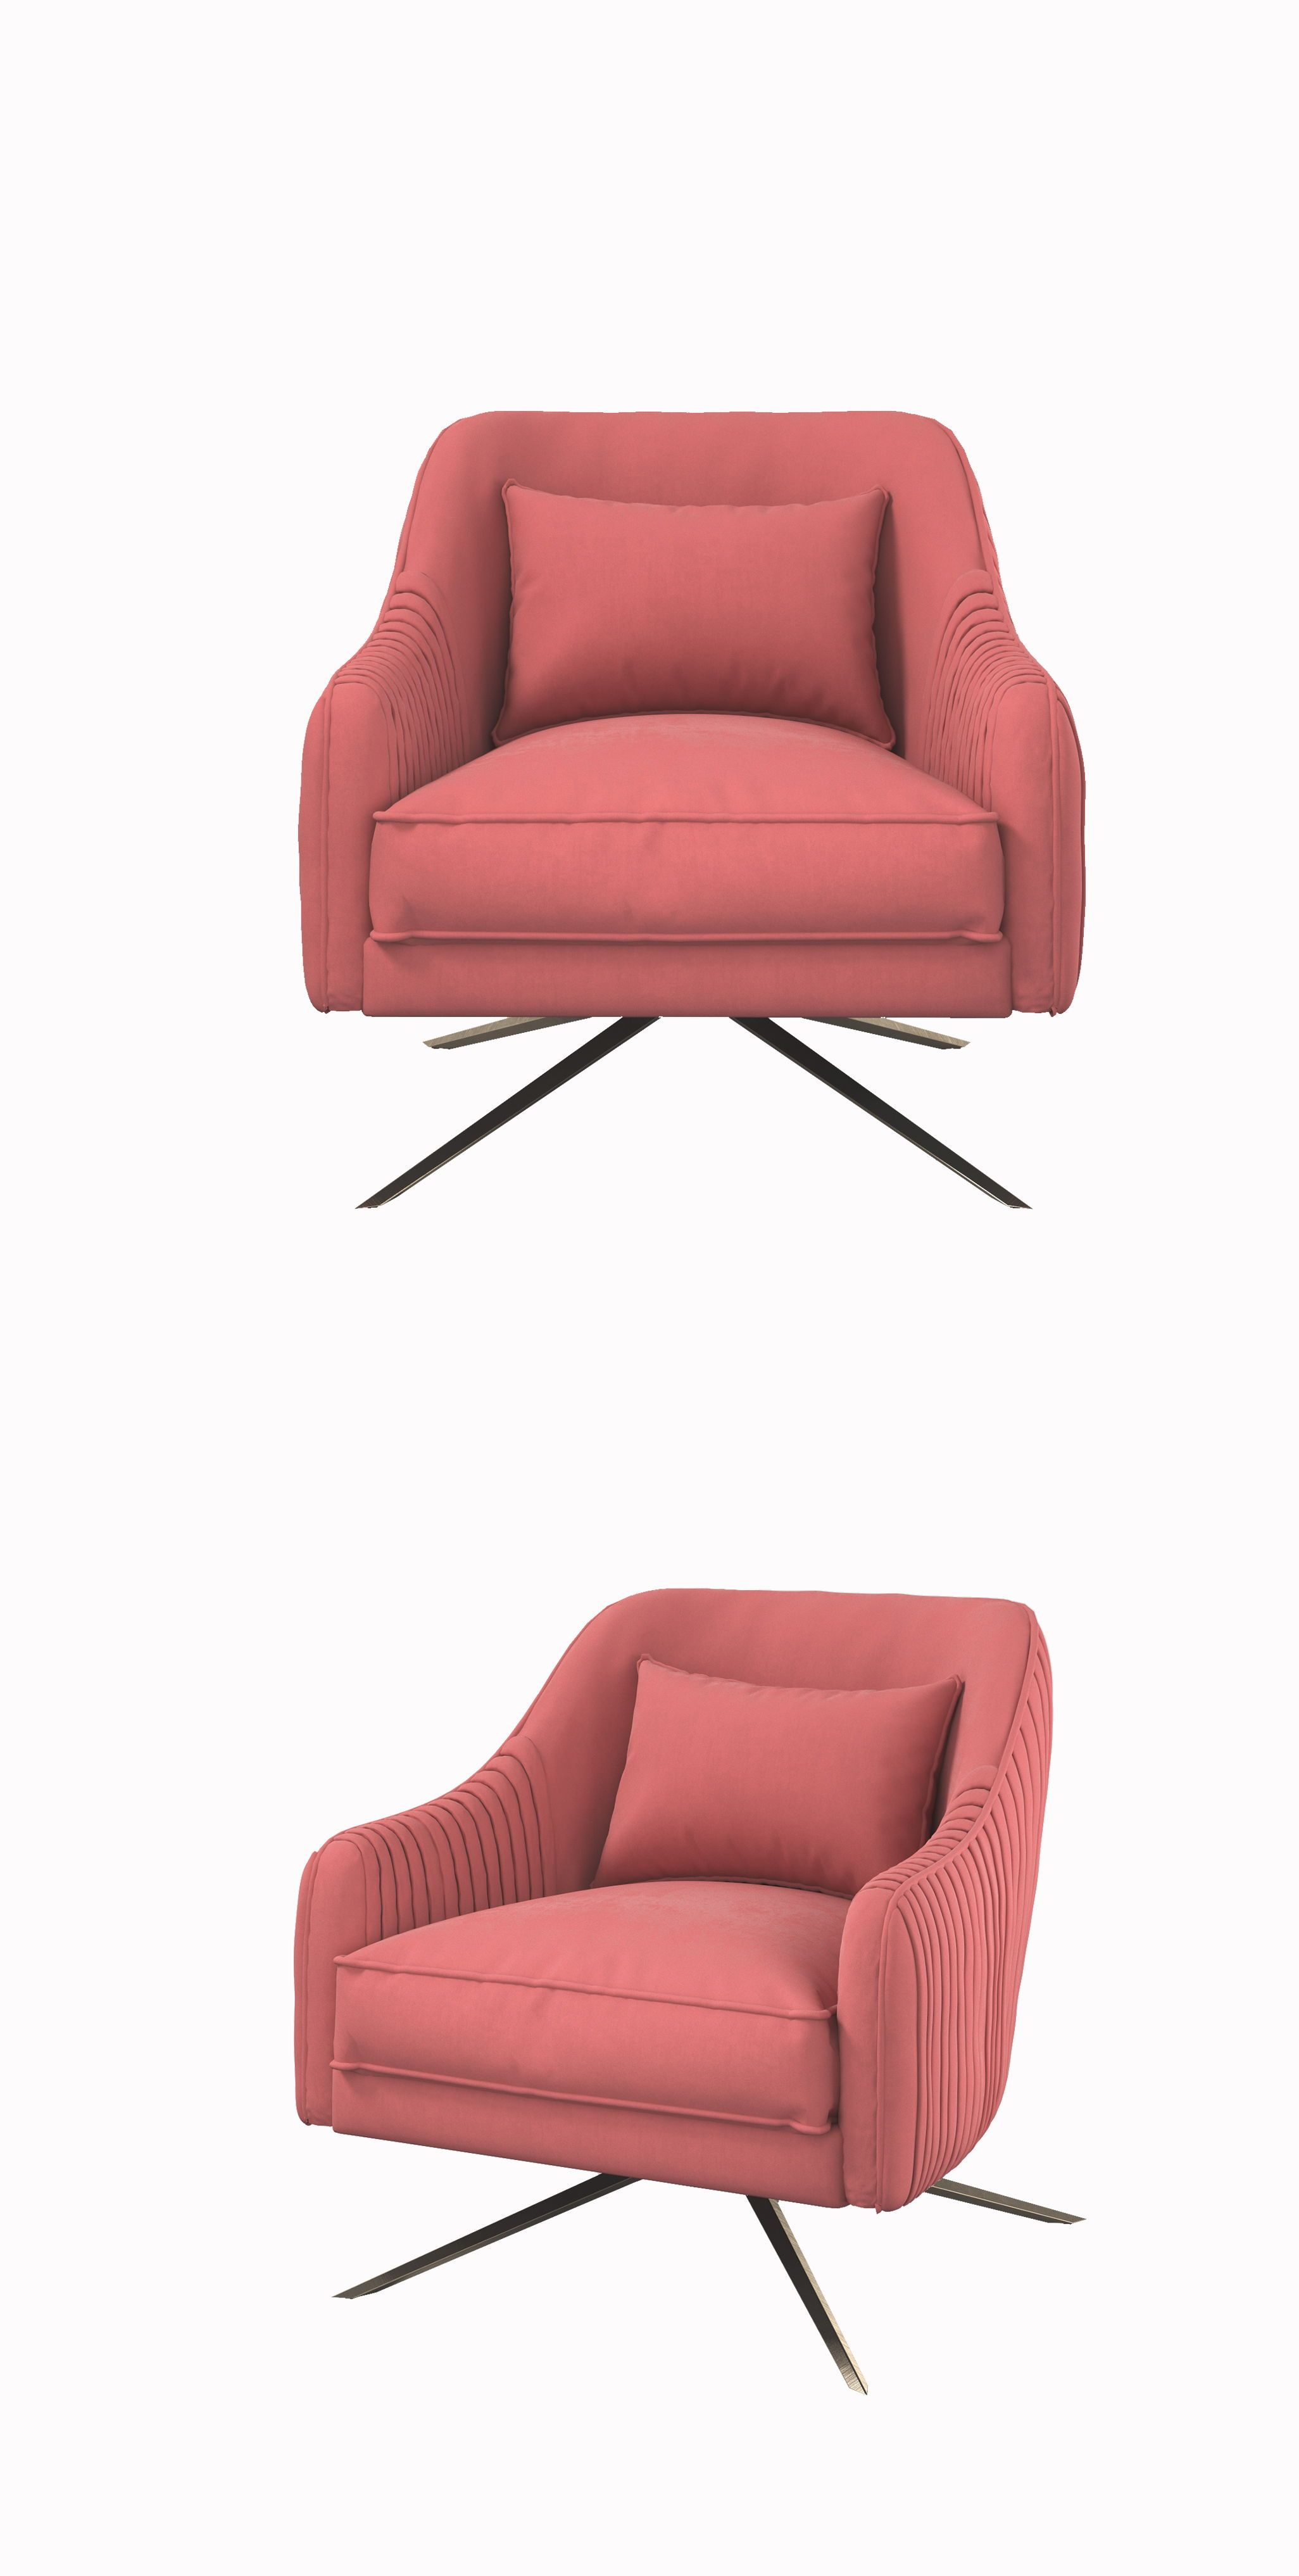 Fabulous Modern Style Sofa Chair Pink Conventional Stainless Steel Ibusinesslaw Wood Chair Design Ideas Ibusinesslaworg